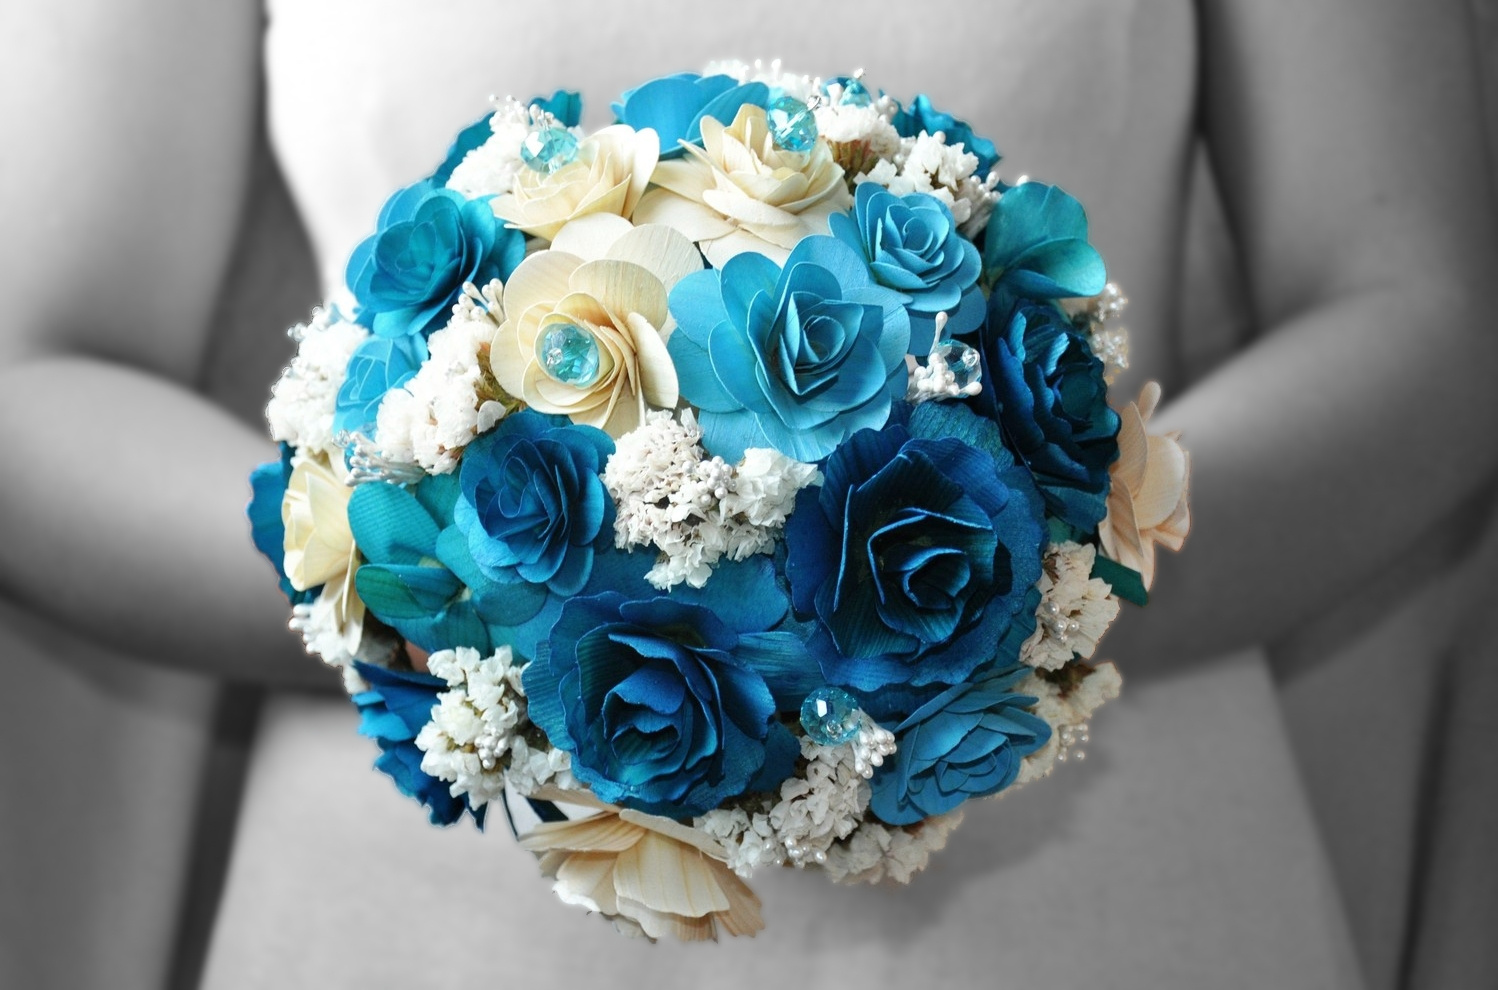 28147-blue-and-white-wedding-flowers-bouquet